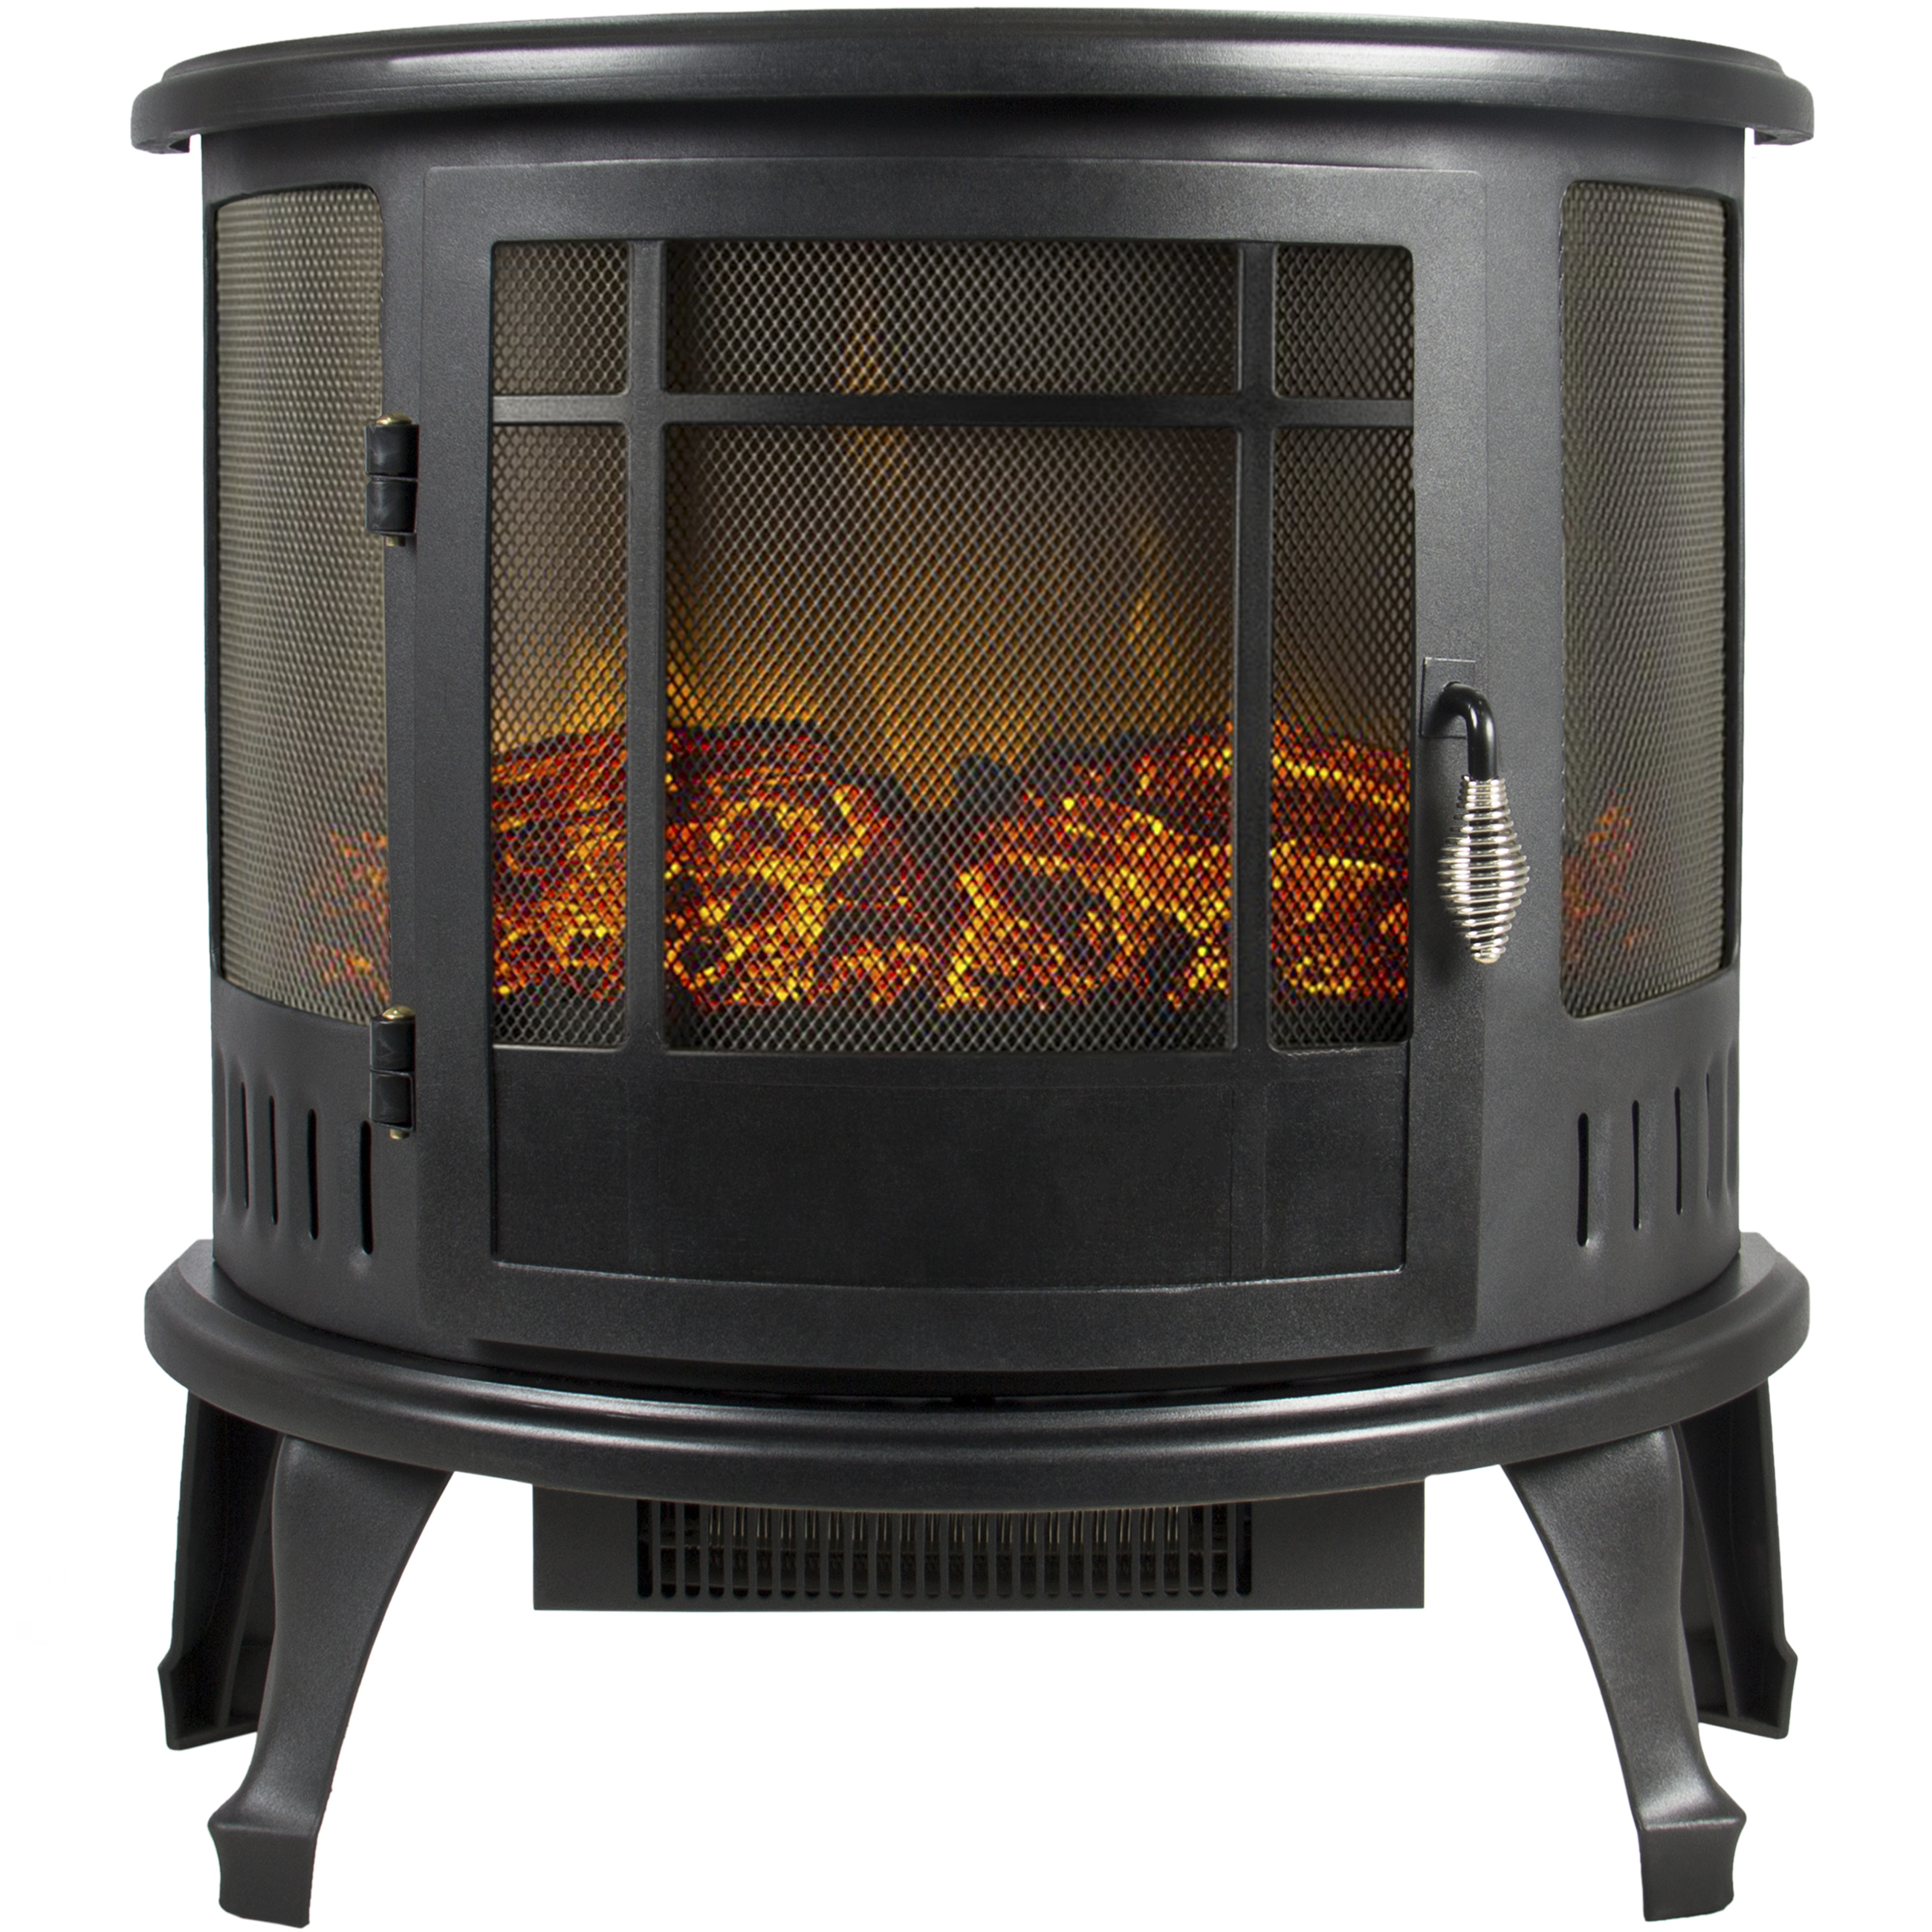 Portable Electric Fireplace Stove 1500W Space Heater Realistic Flame  Perfect Design For Corners   Walmart.com